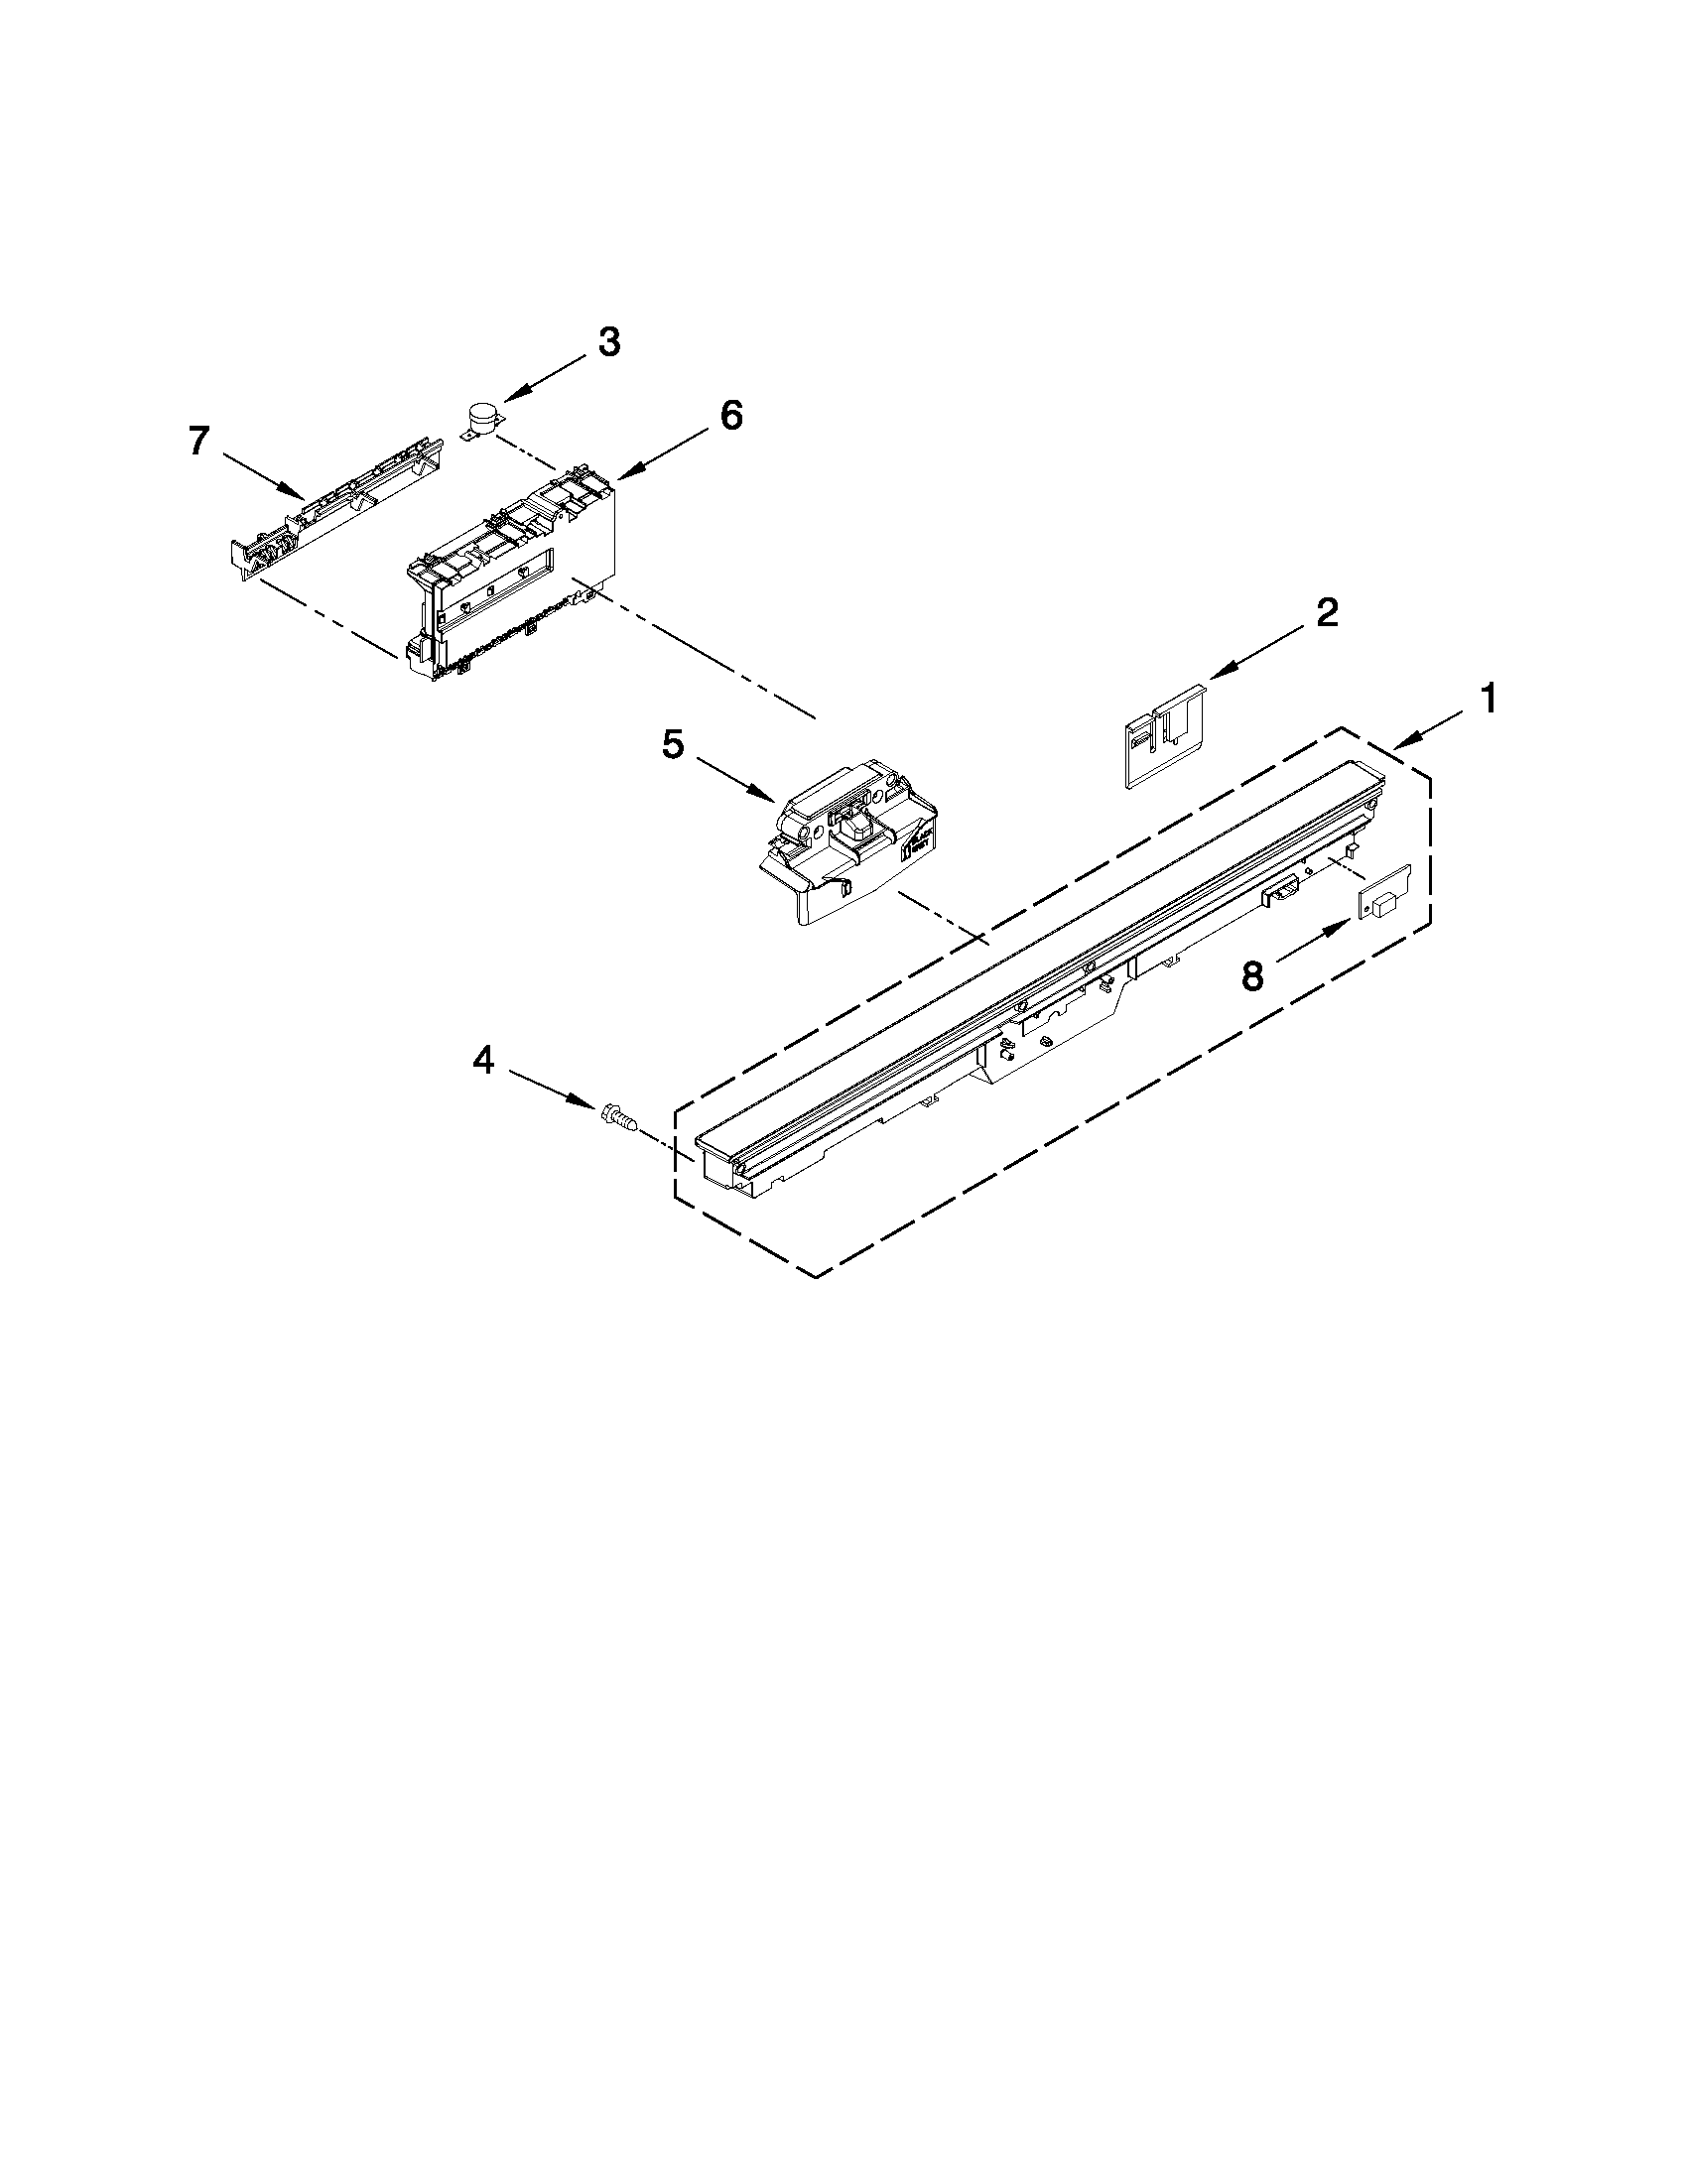 how do i reset my kitchenaid dishwasher  lights on control panel wont come on  its model number